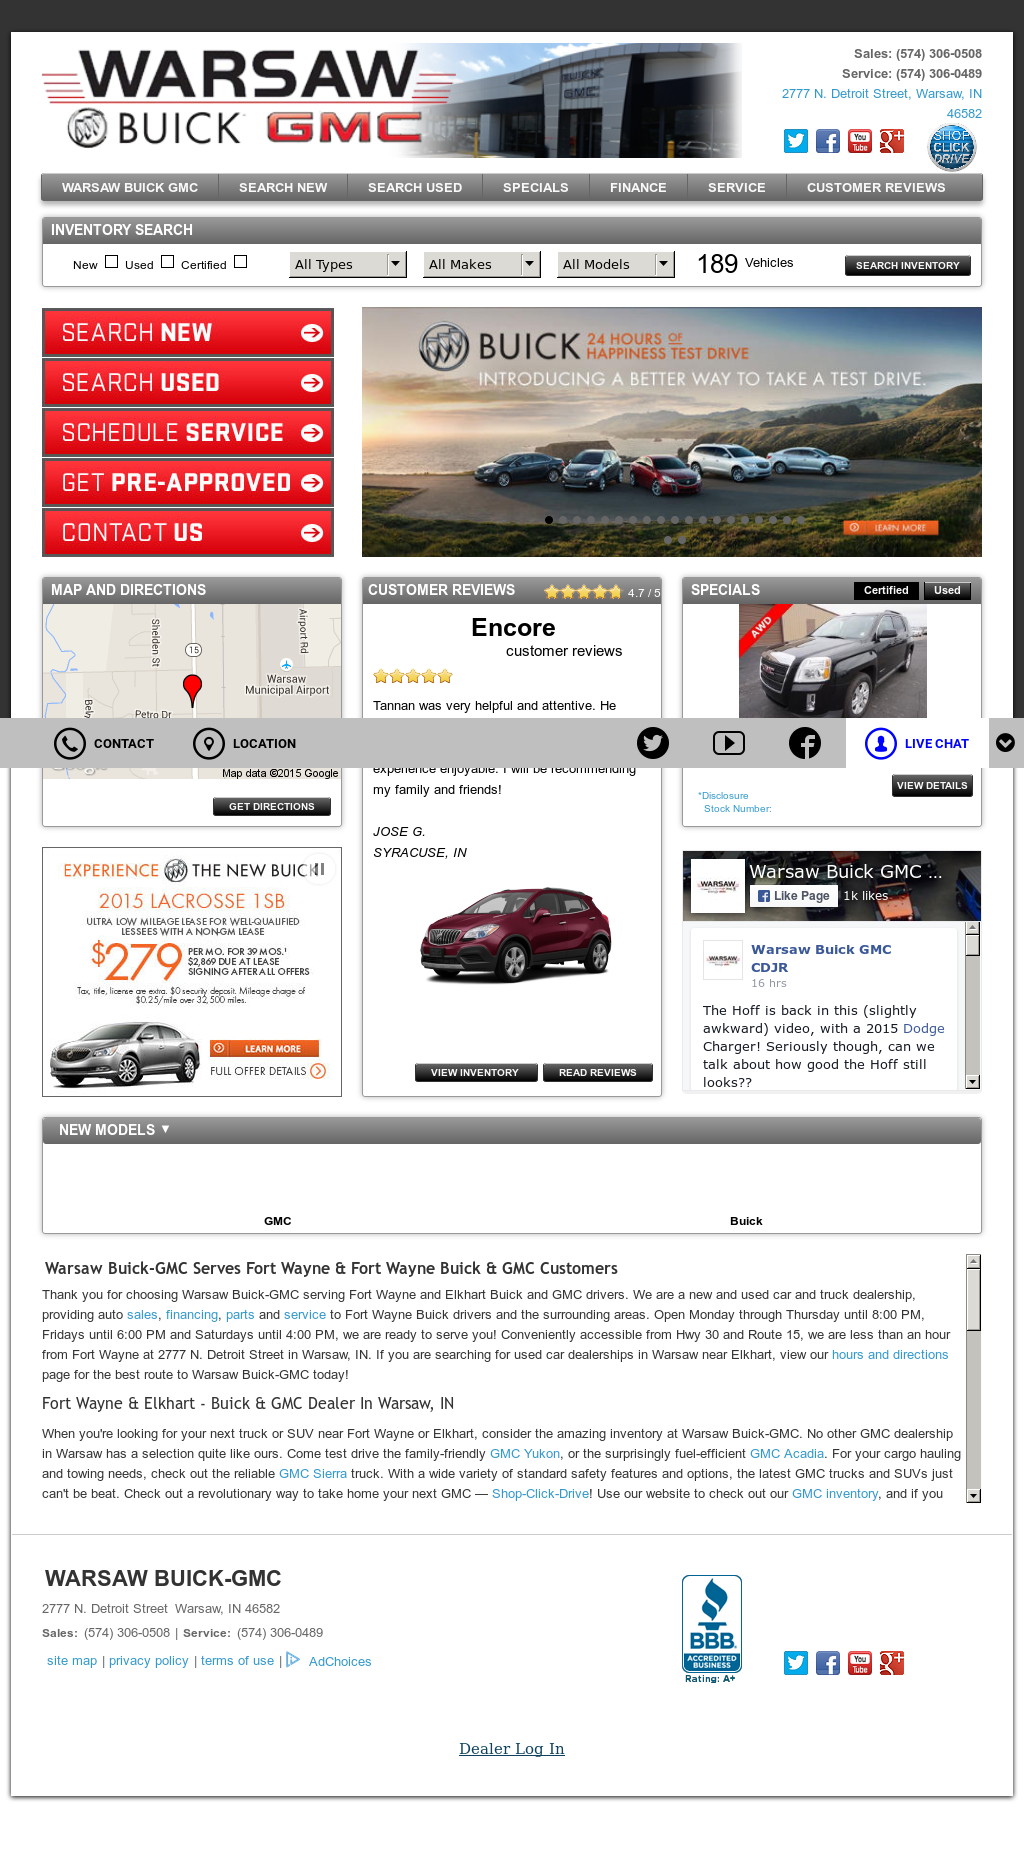 Warsaw Buick Gmc >> Warsaw Buick Gmc Competitors Revenue And Employees Owler